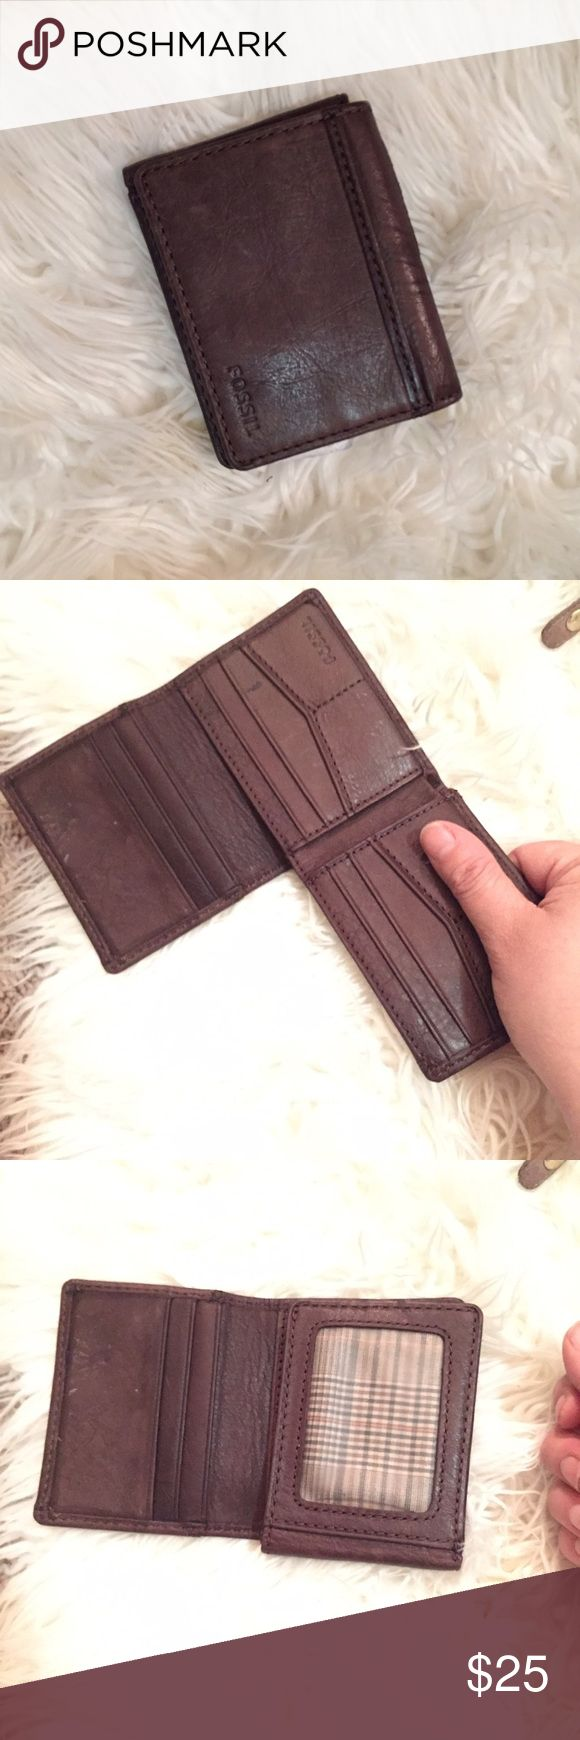 Men's Brown Leather Fossil Wallet NWOT Fossil Bags Wallets